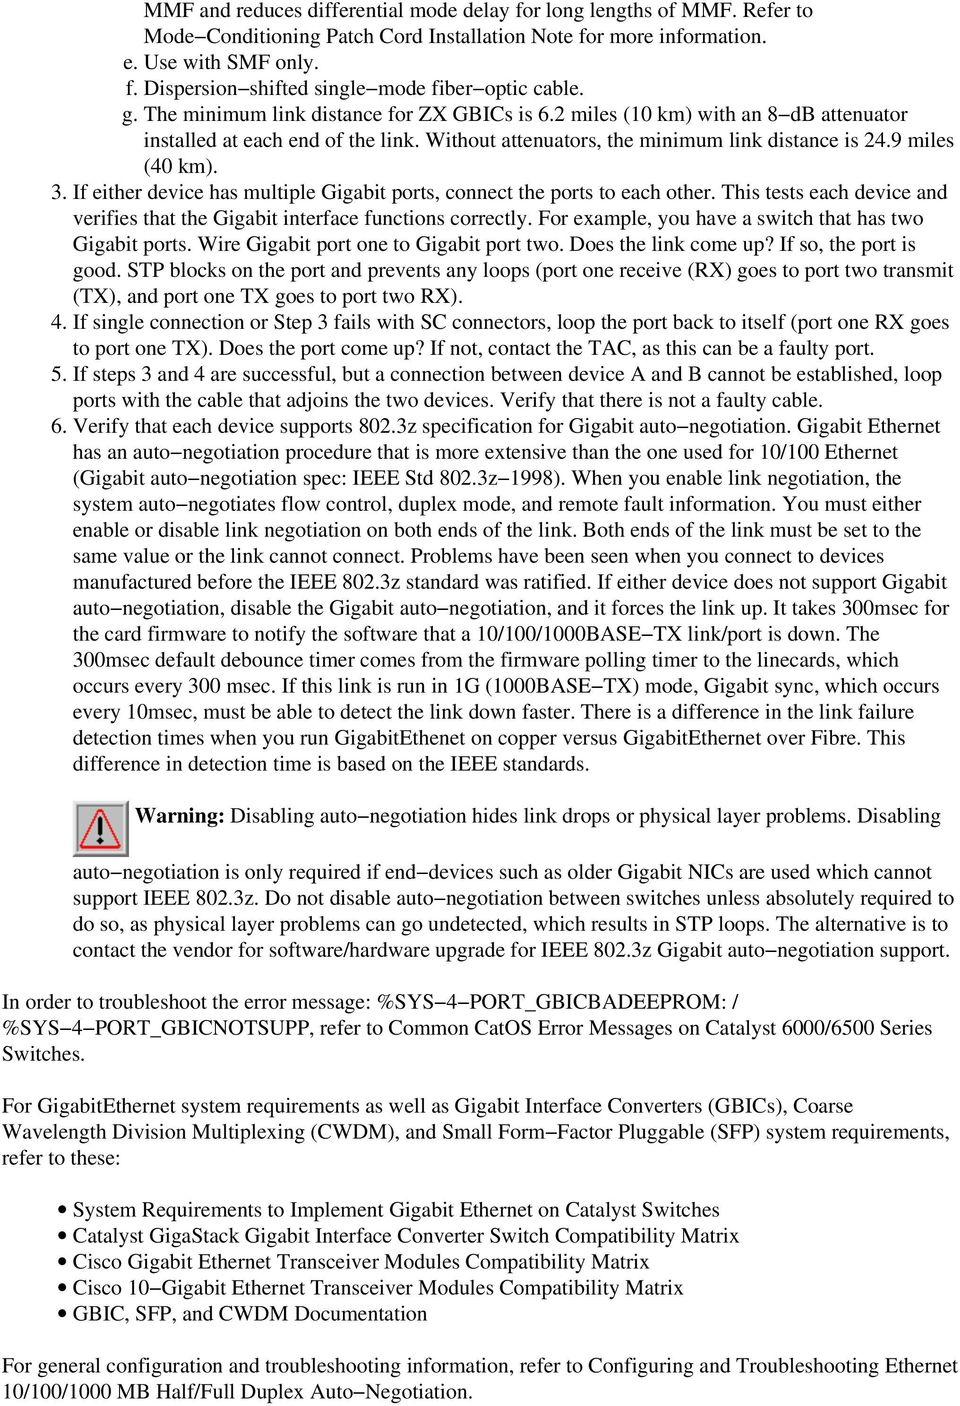 Troubleshooting Switch Port and Interface Problems - PDF